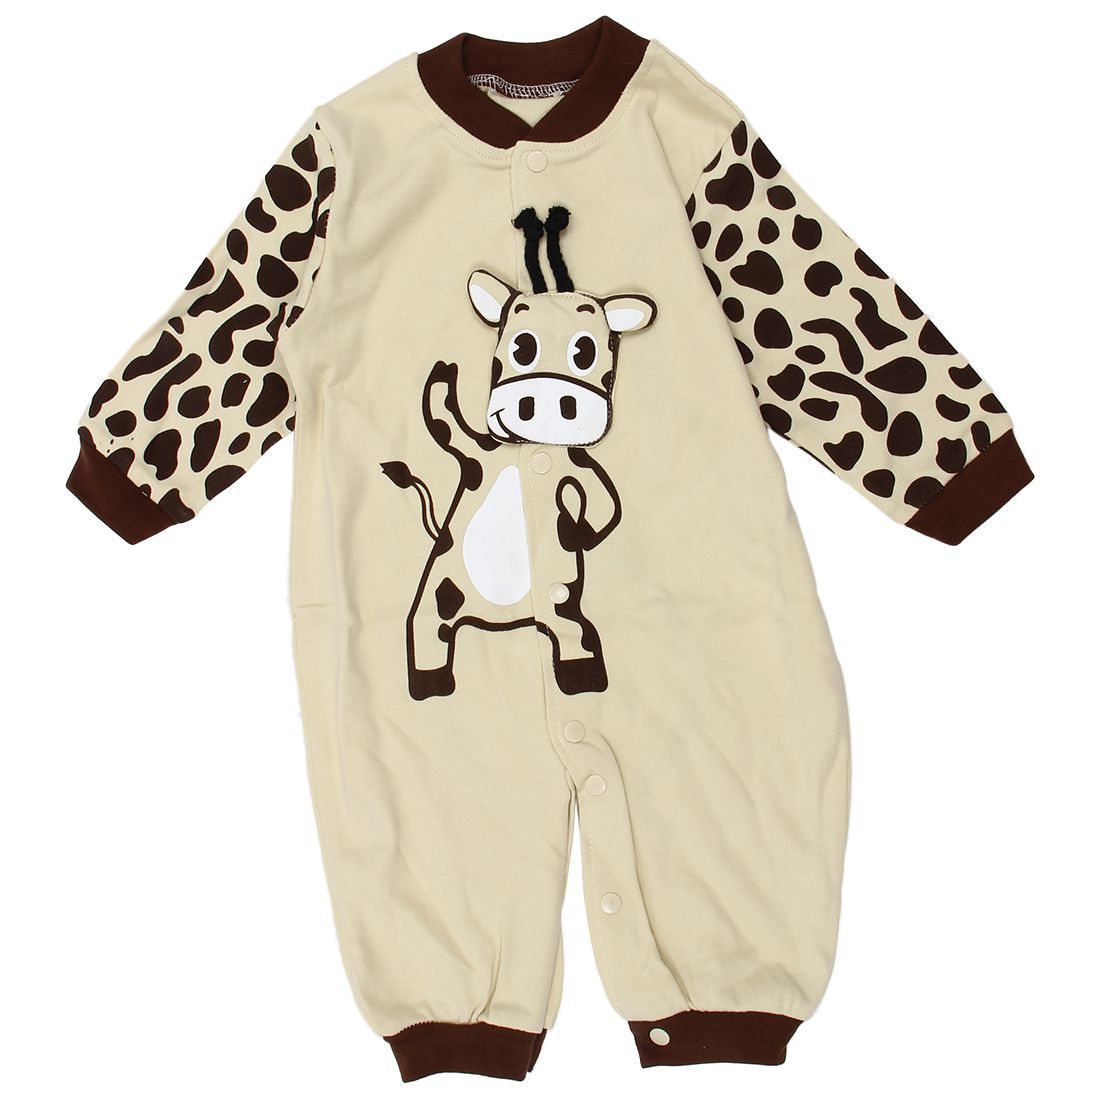 New Cow Newborn Girls Boys Clothes Jumpsuit Baby Outfit Infant Romper Clothes